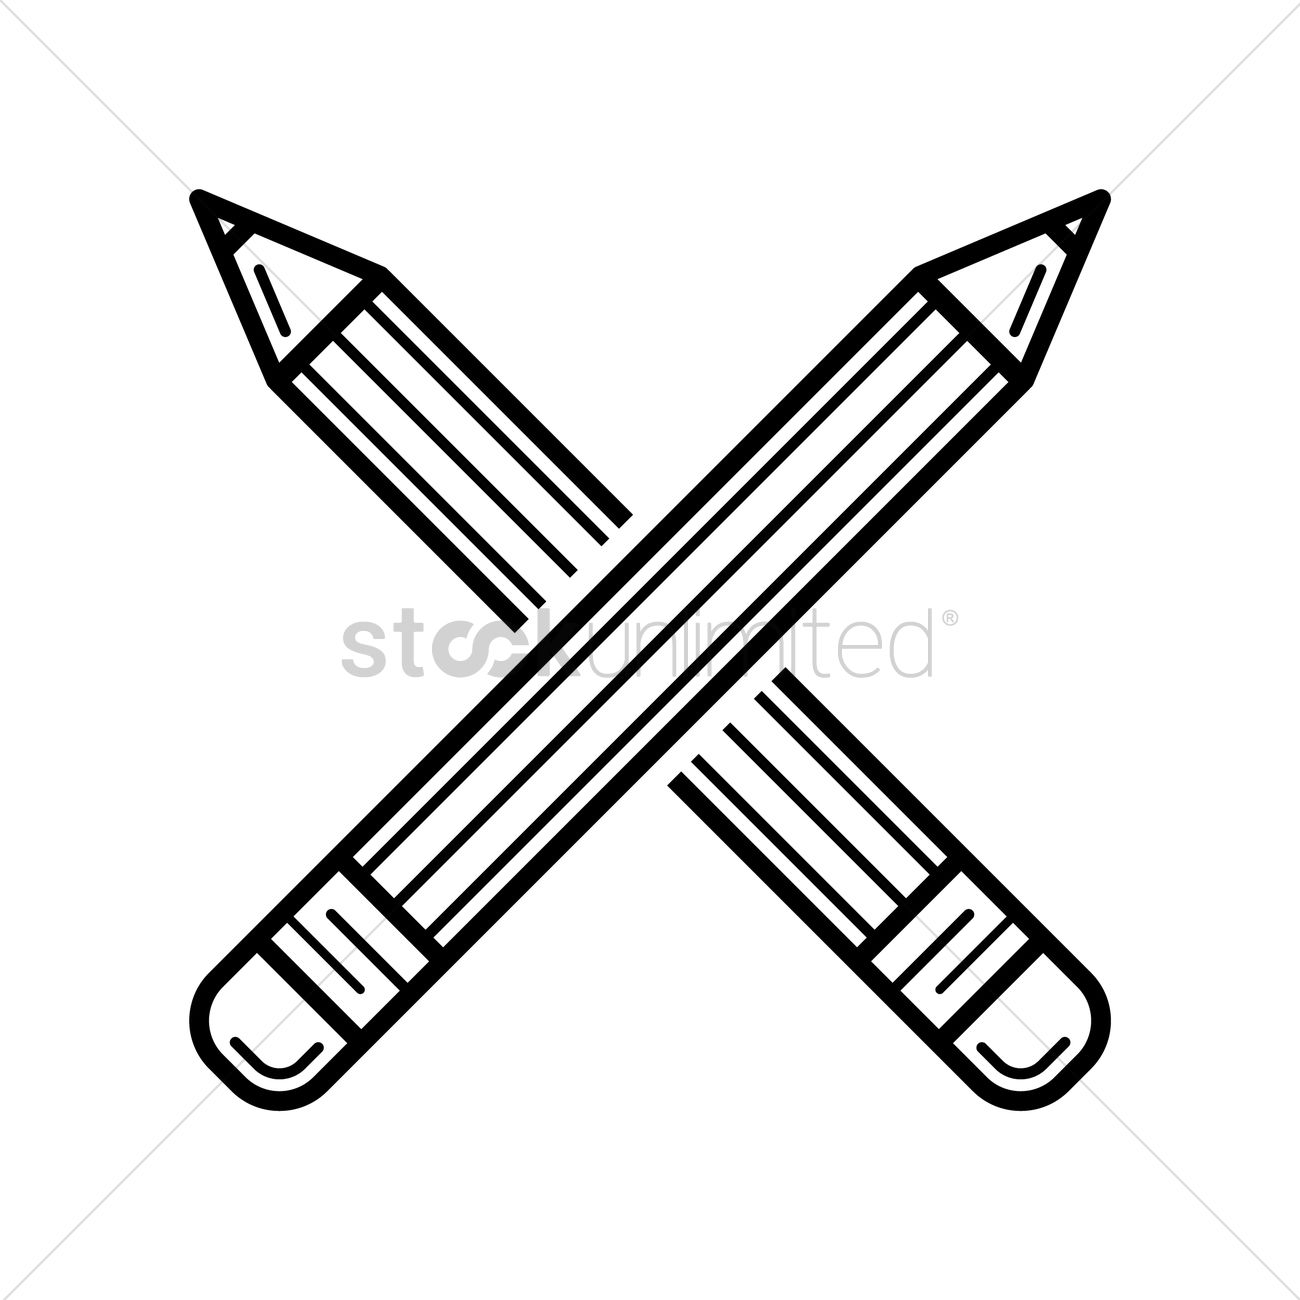 crossed pencils vector image 1524821 stockunlimited rh stockunlimited com cross pens gold content cross pens logo